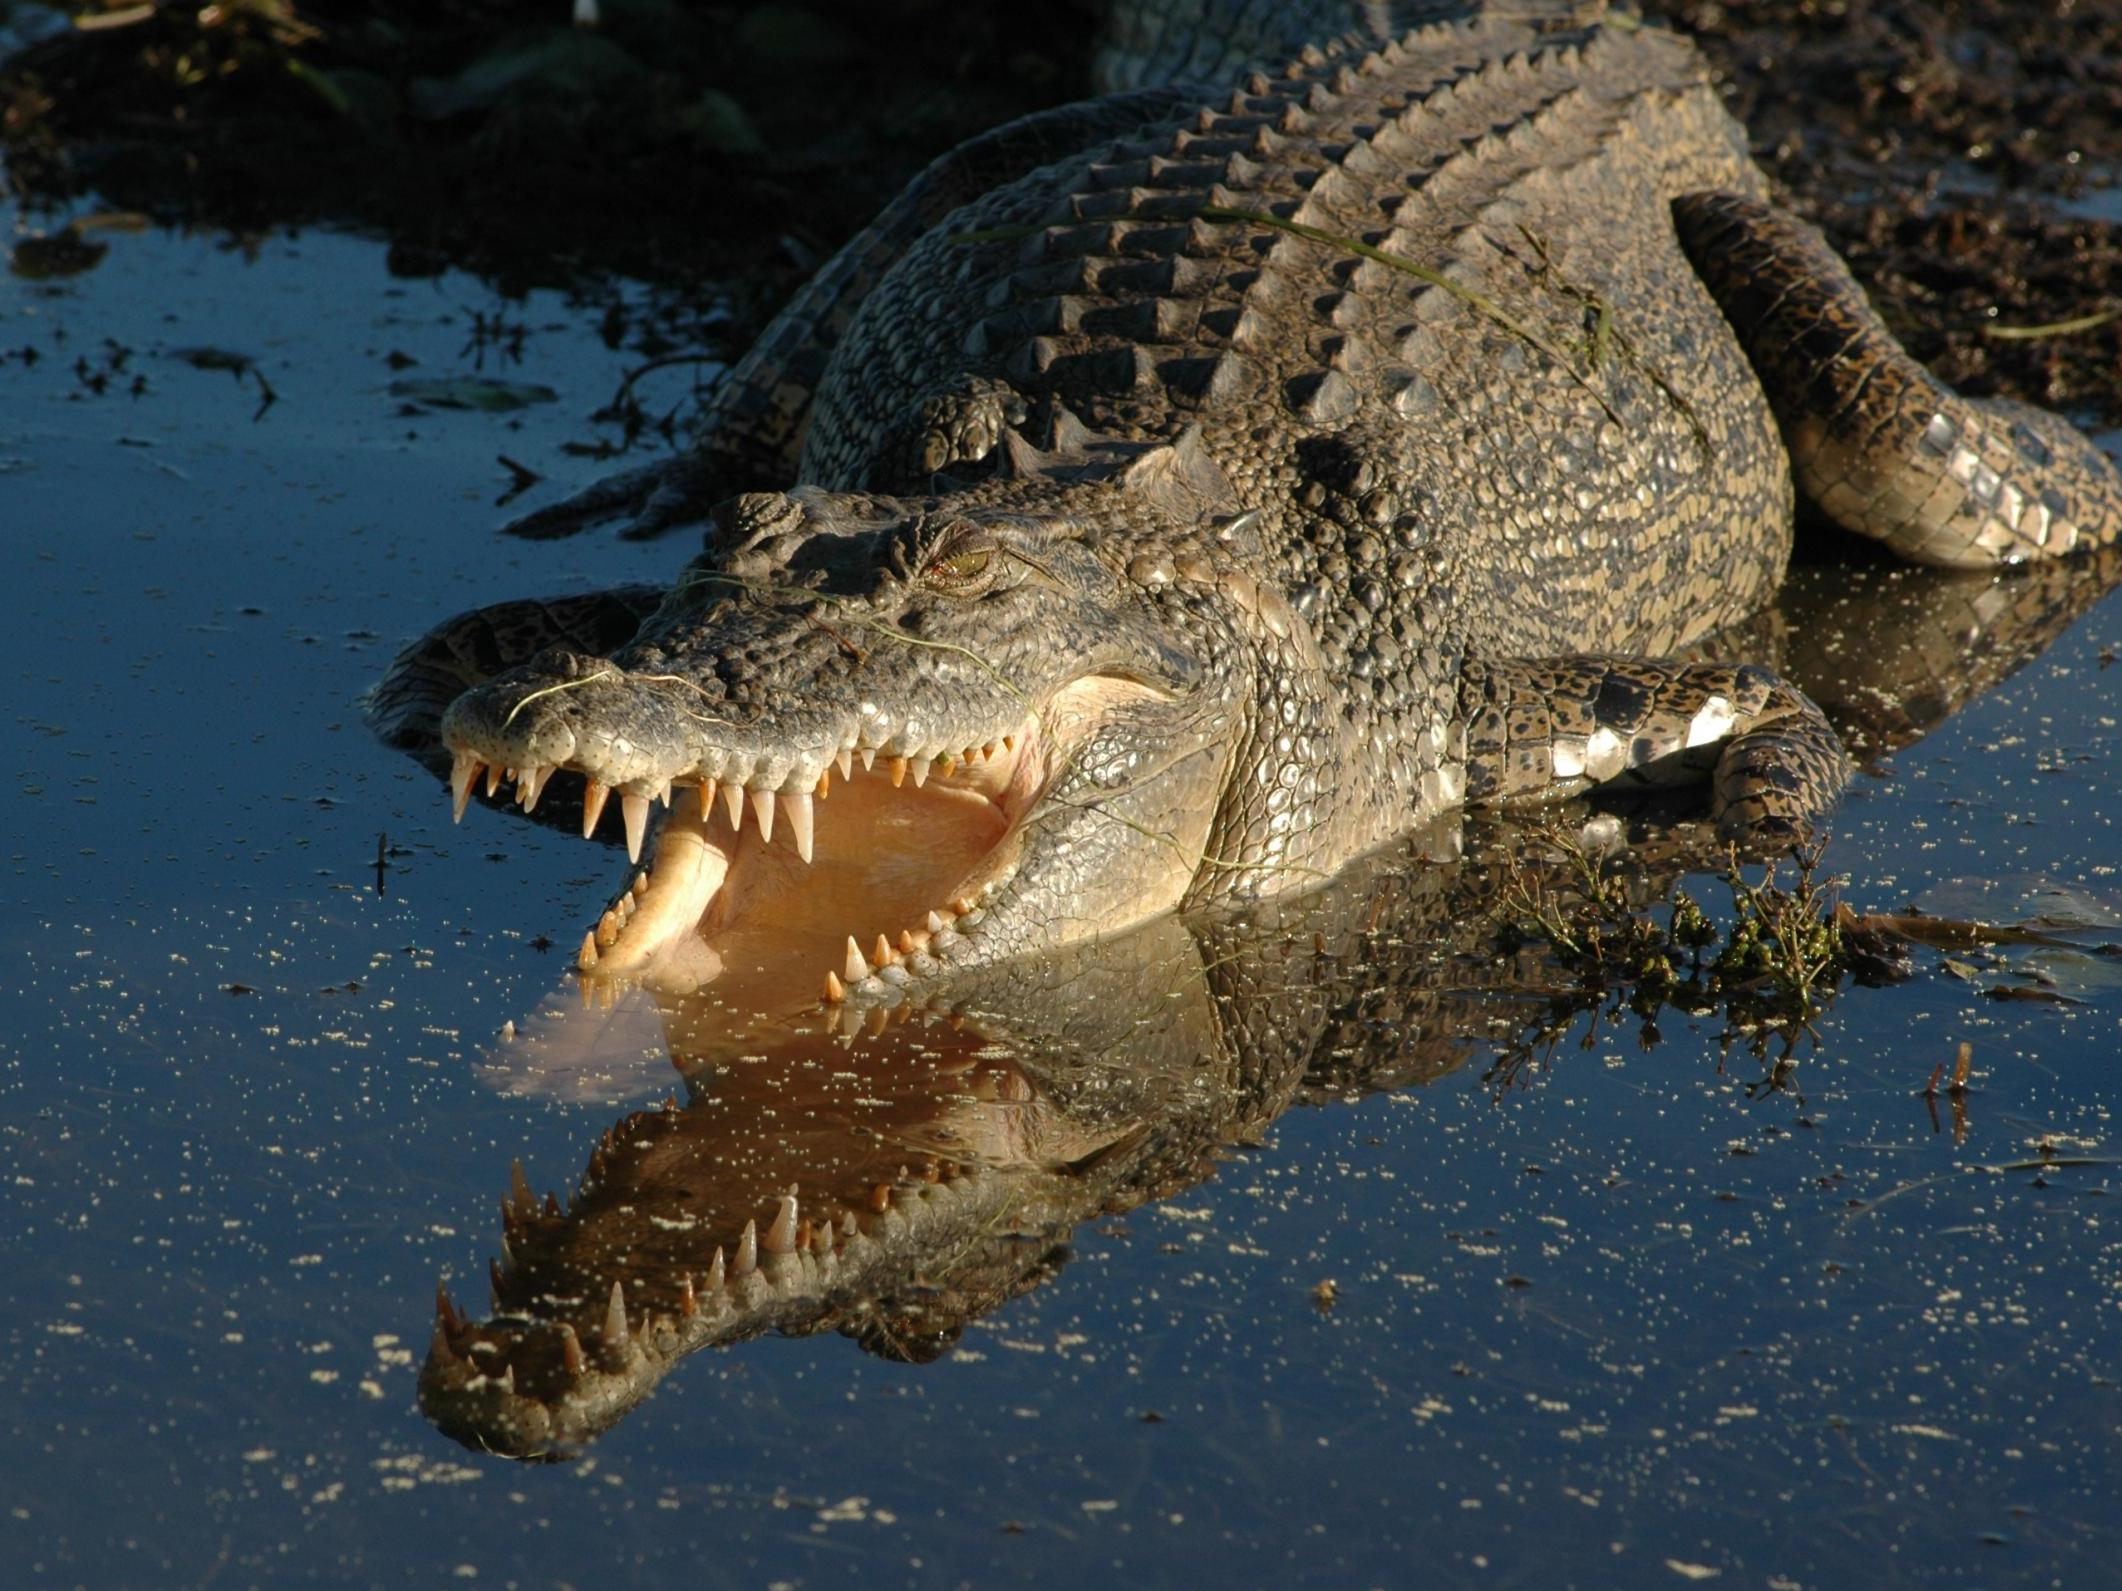 Crocodile eats 10-year-old boy alive in front of his siblings